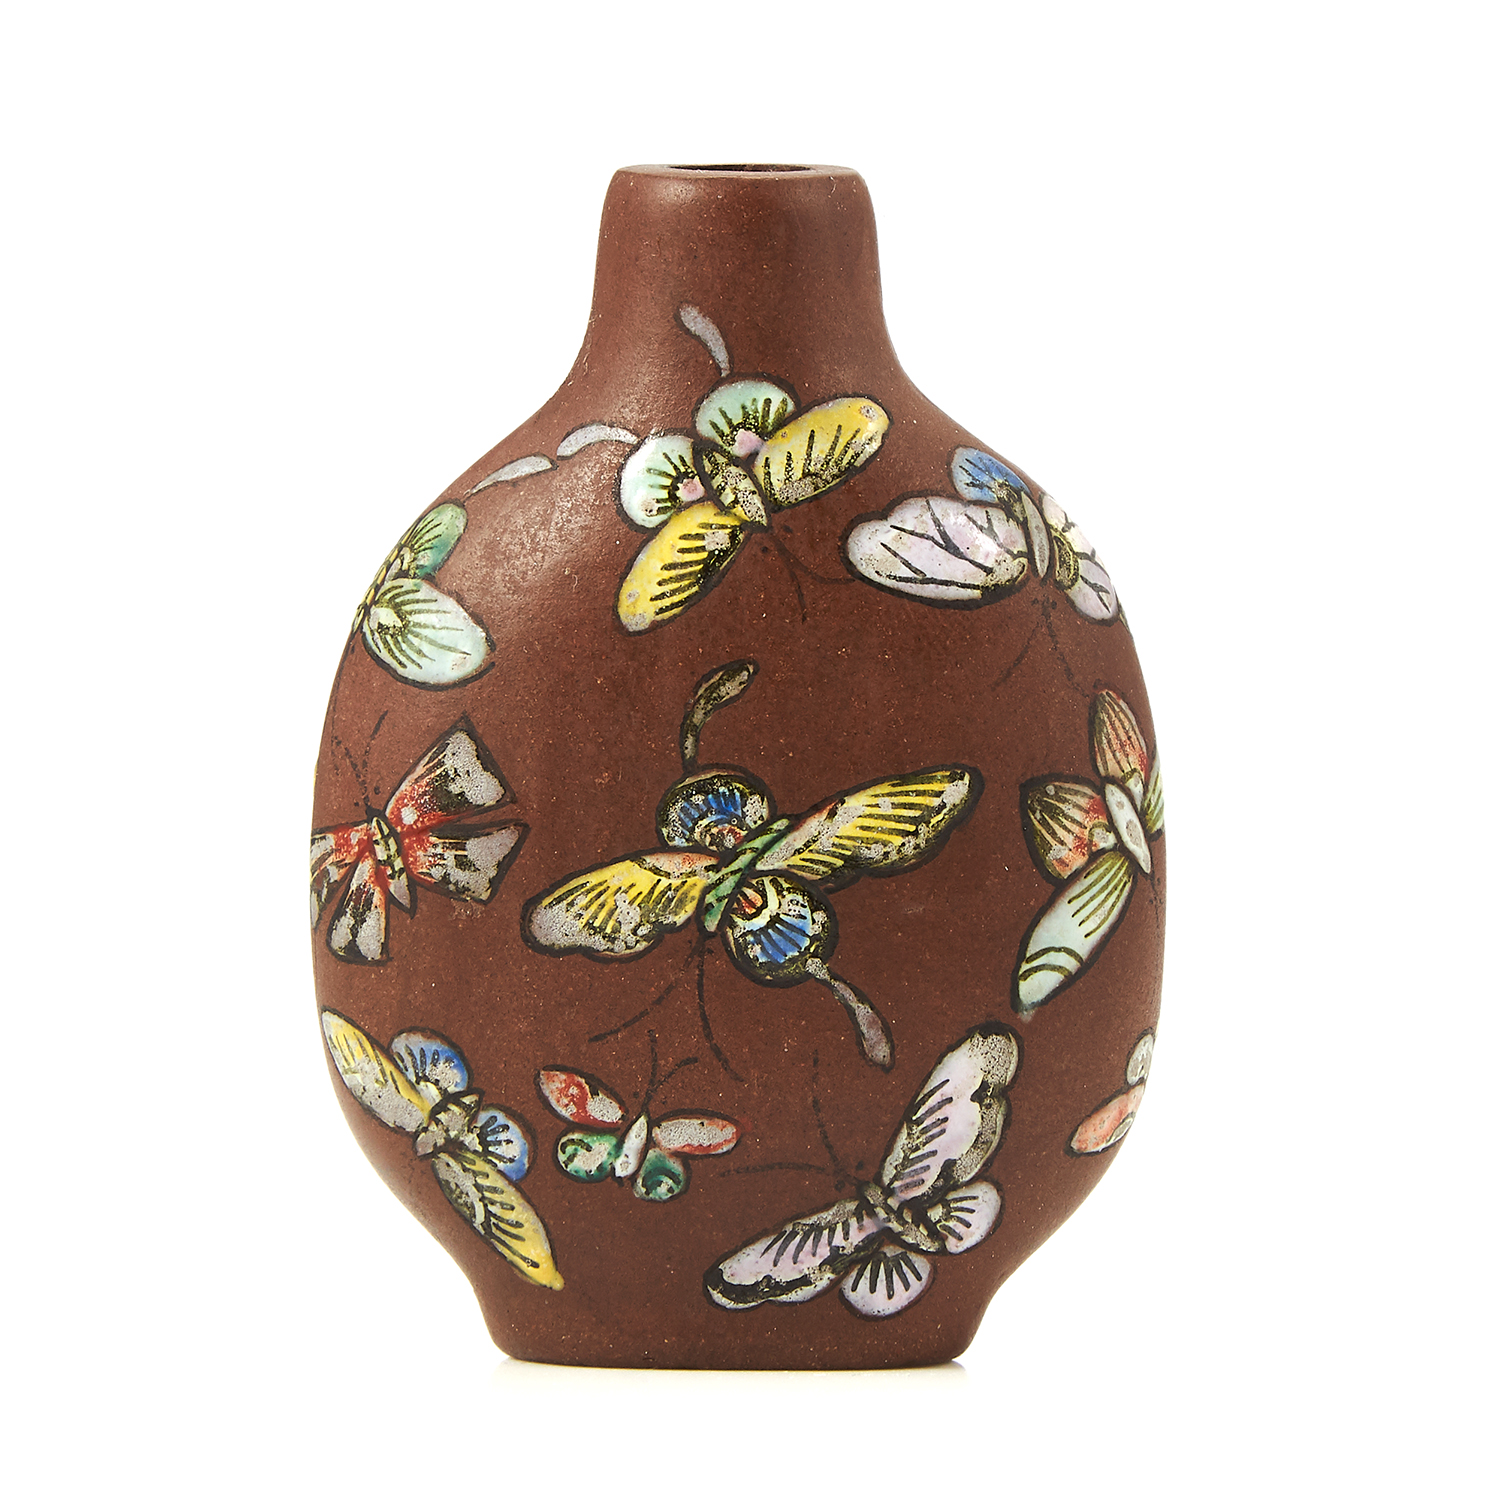 Los 54 - A CHINESE STONEWARE SNUFF BOTTLE decorated with butterflies, 6.4cm.